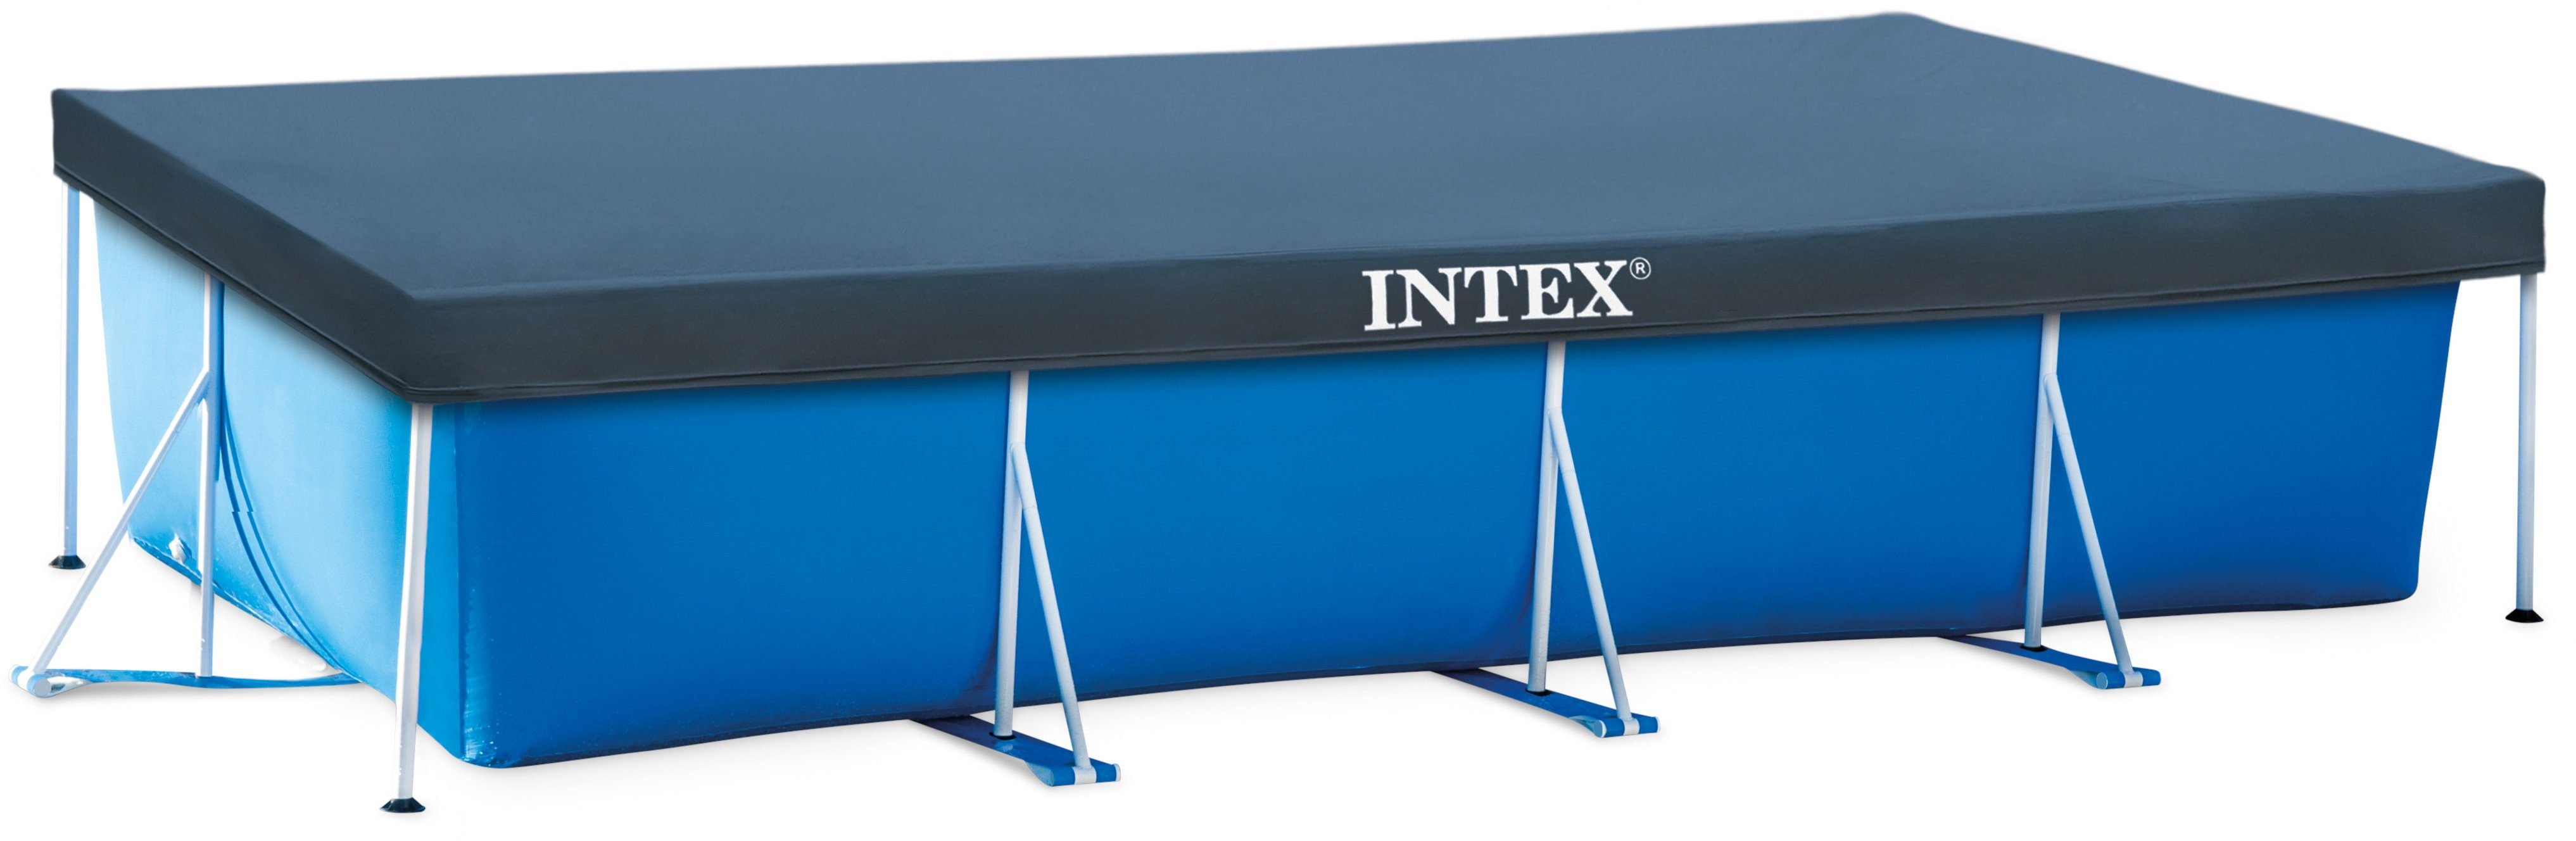 Intex pool abdeckplane pool cover f r rechteckige pools for Intex pool 150 cm tief